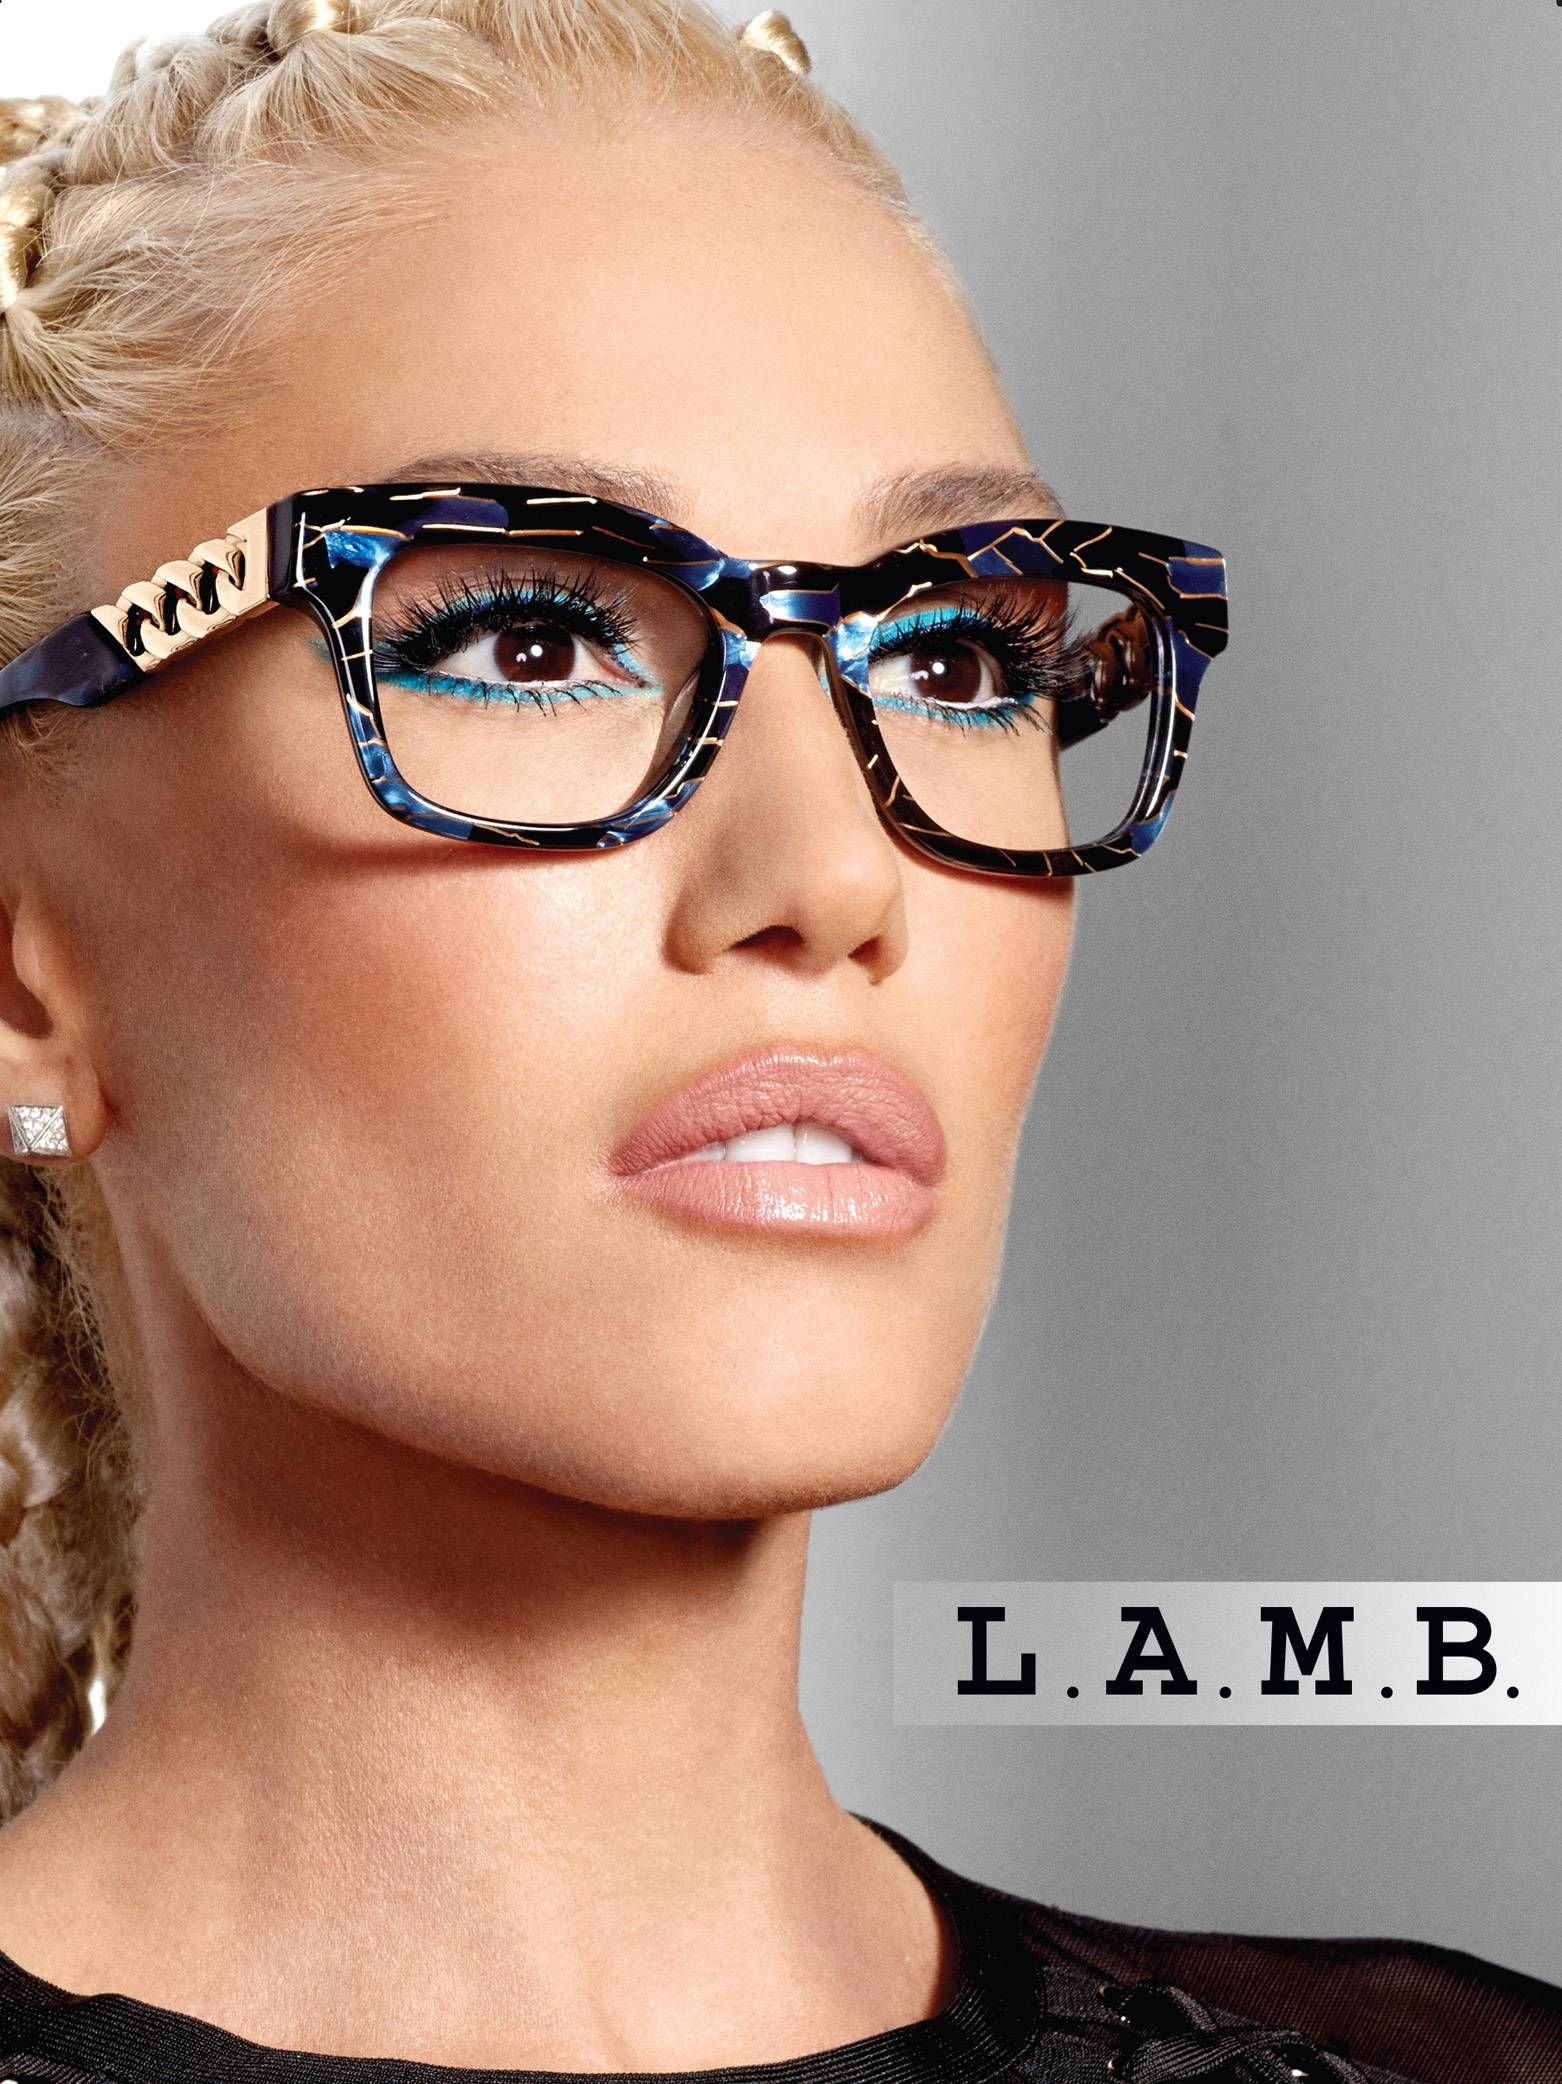 927a3681b1 Gwen Stefani s Glasses-Wearing Son Zuma Inspired Her New Eyewear ...